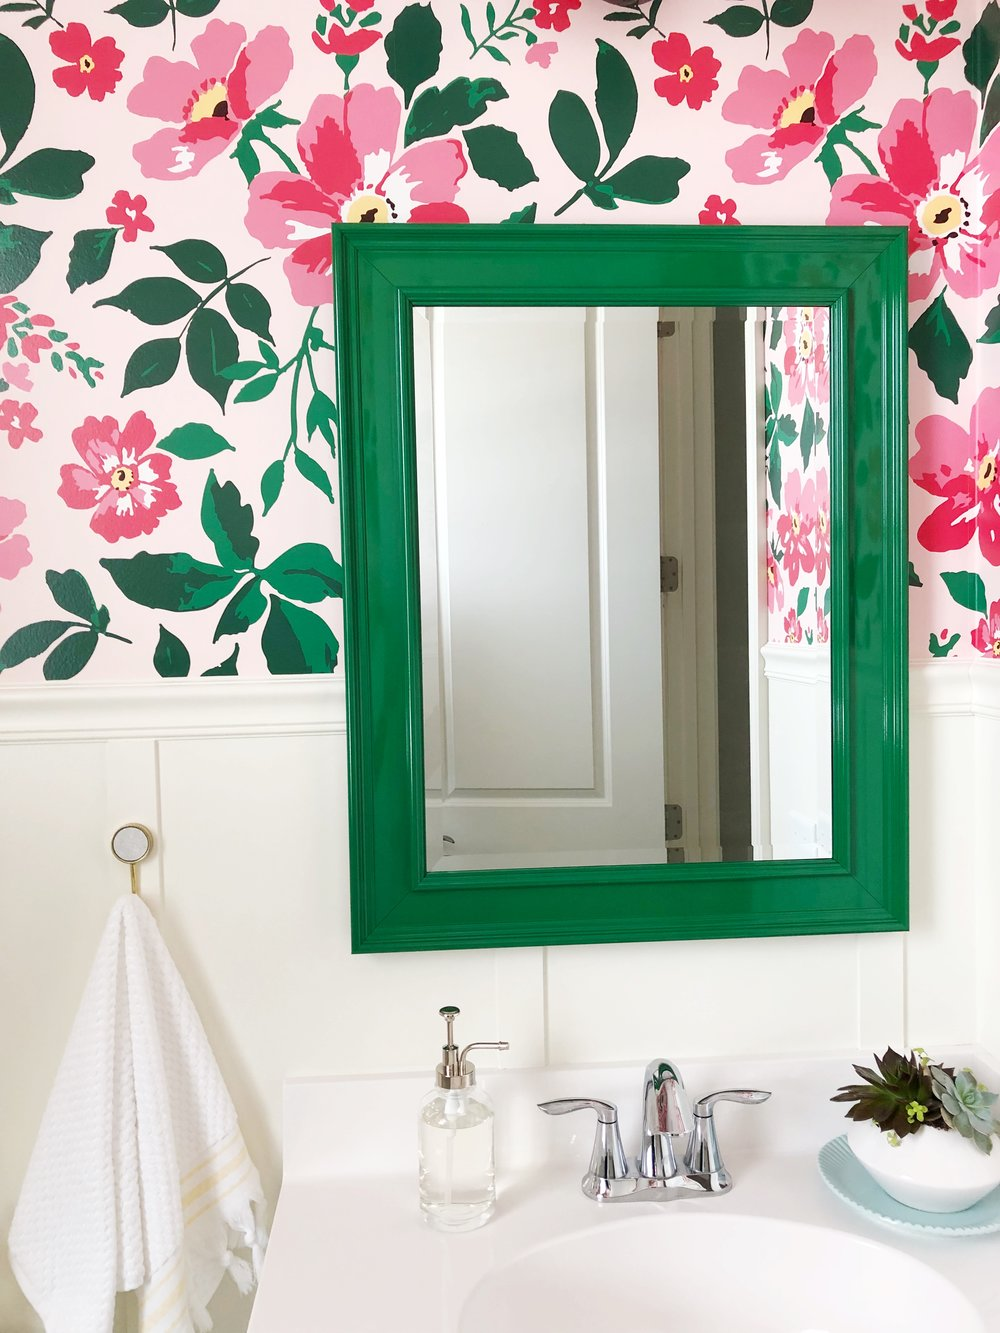 Wallpaper Bathroom with Spoonflower custom wallpaper. Board and Batten Powder Room. Green Mirror.